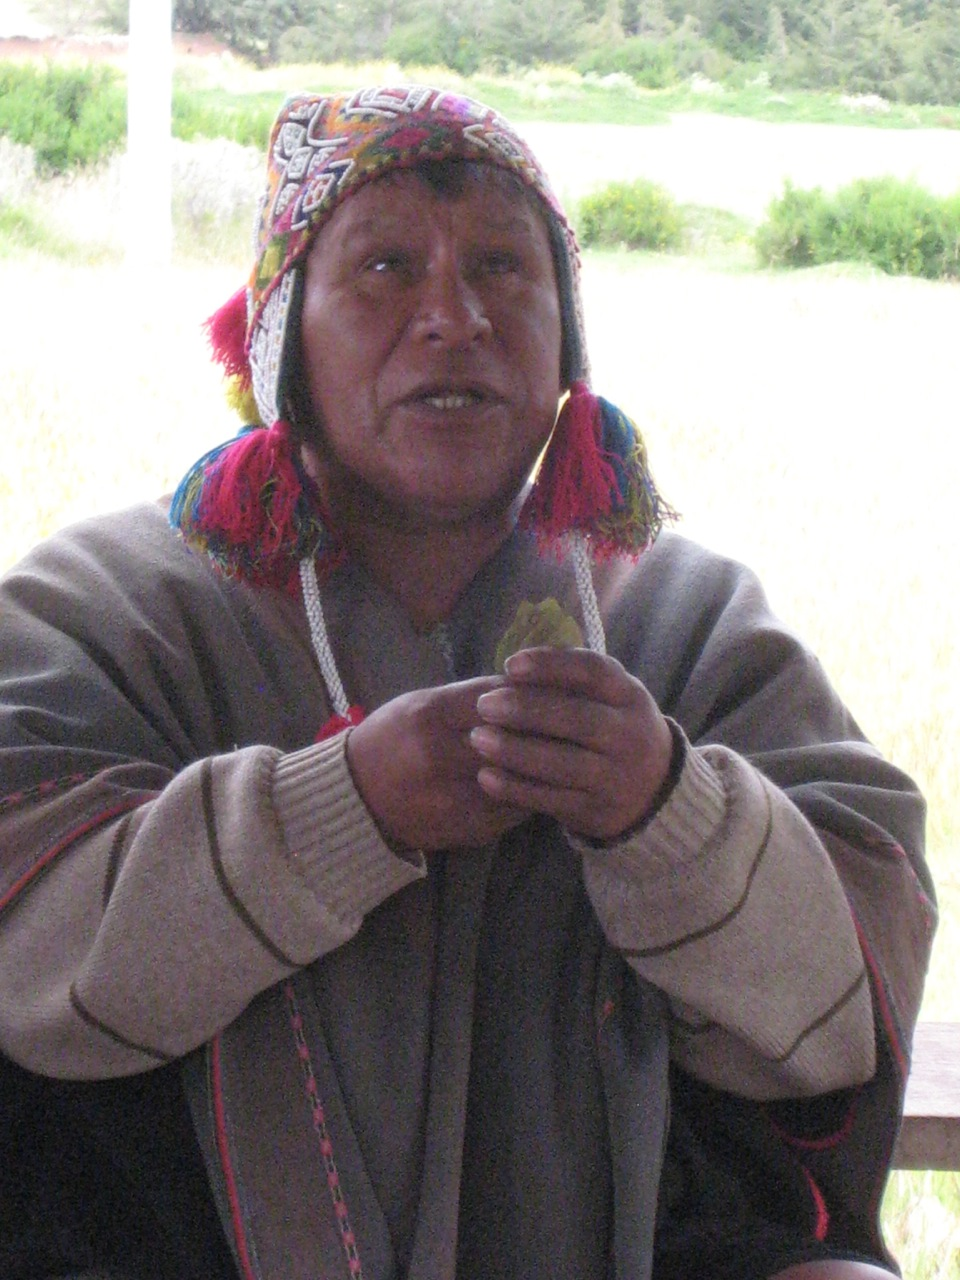 A shaman blessing, with cocoa leaves